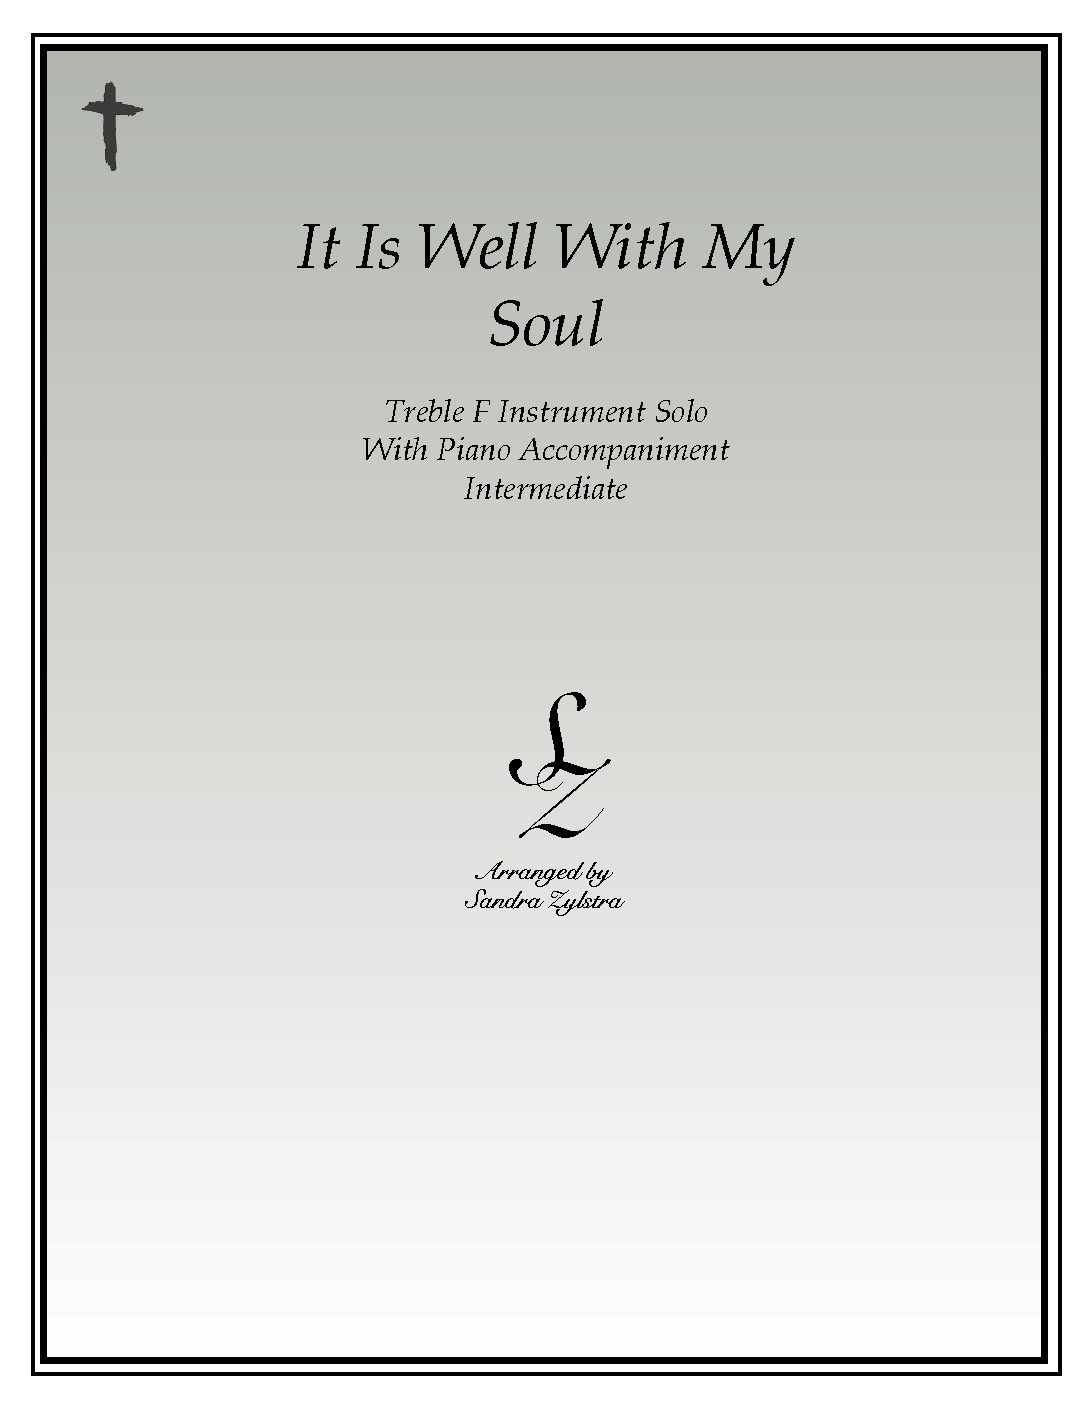 It Is Well With My Soul -Treble F Instrument Solo